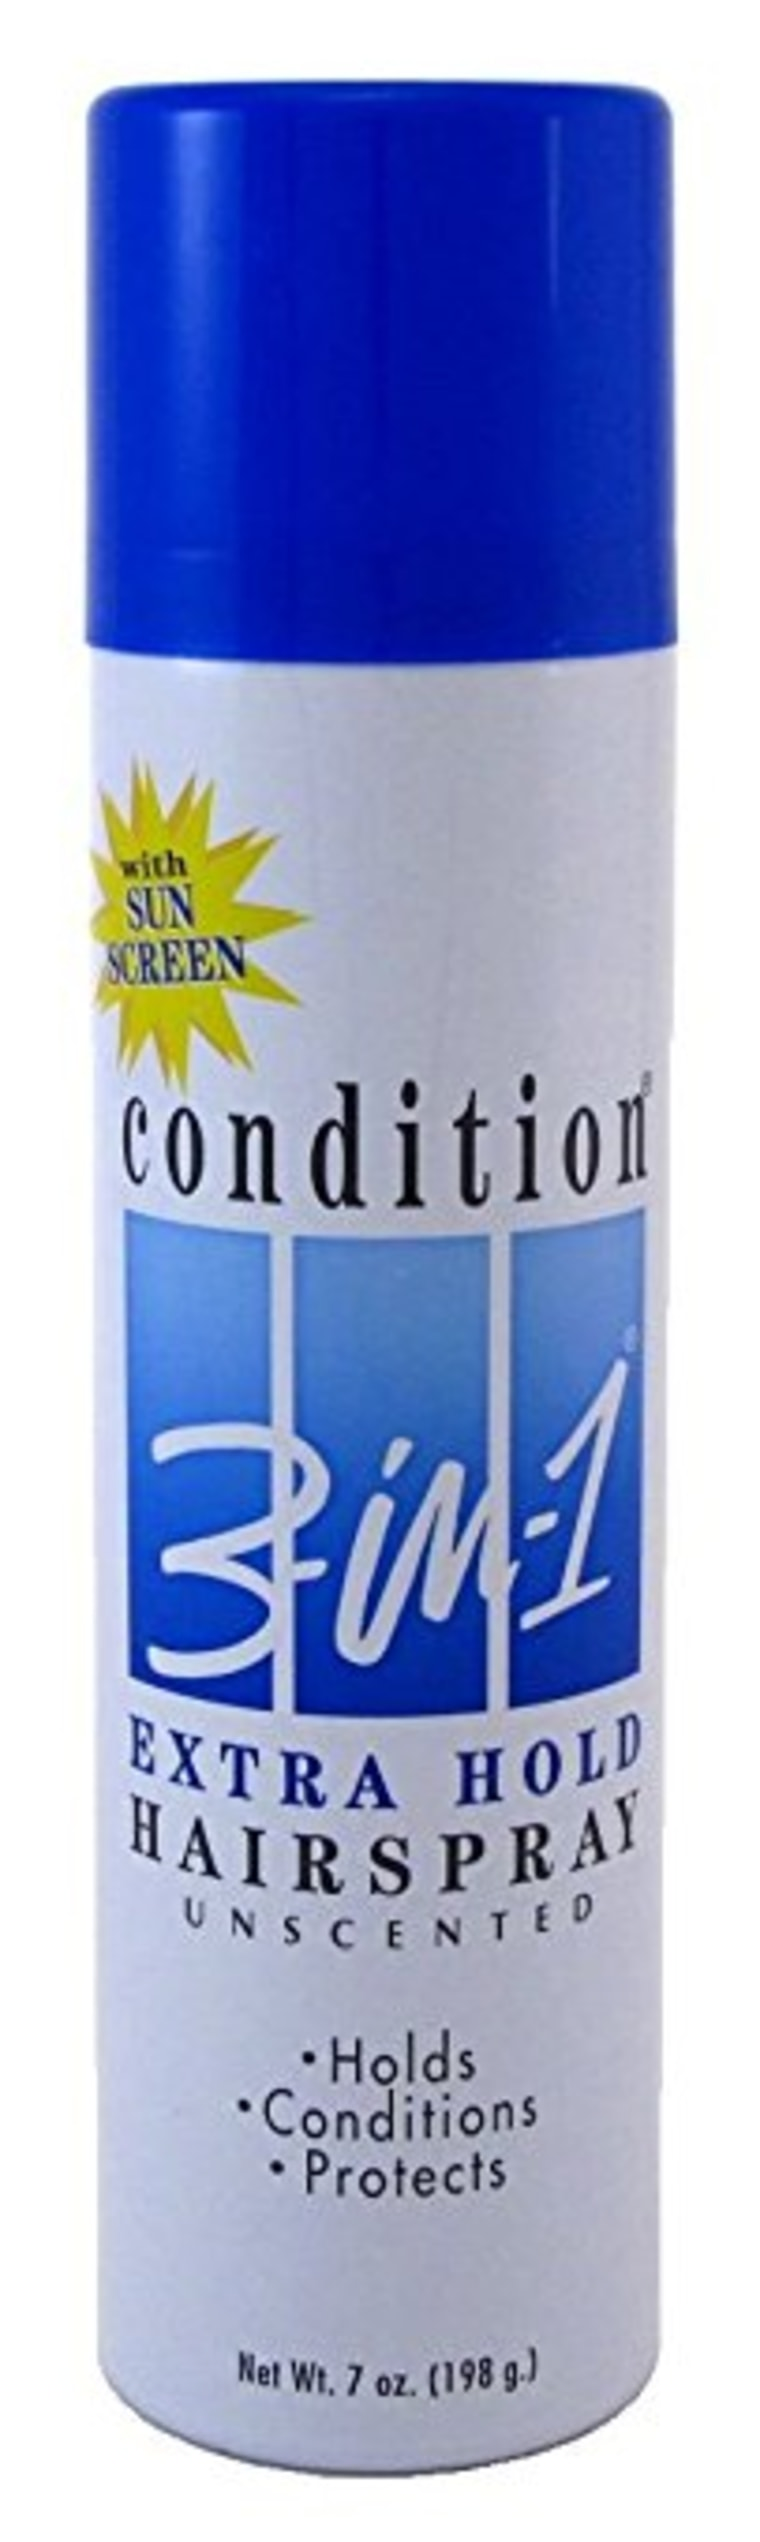 Condition 3-N-1 Aerosol Spray 7 Ounce Max Hold Unscented With Sunscreen